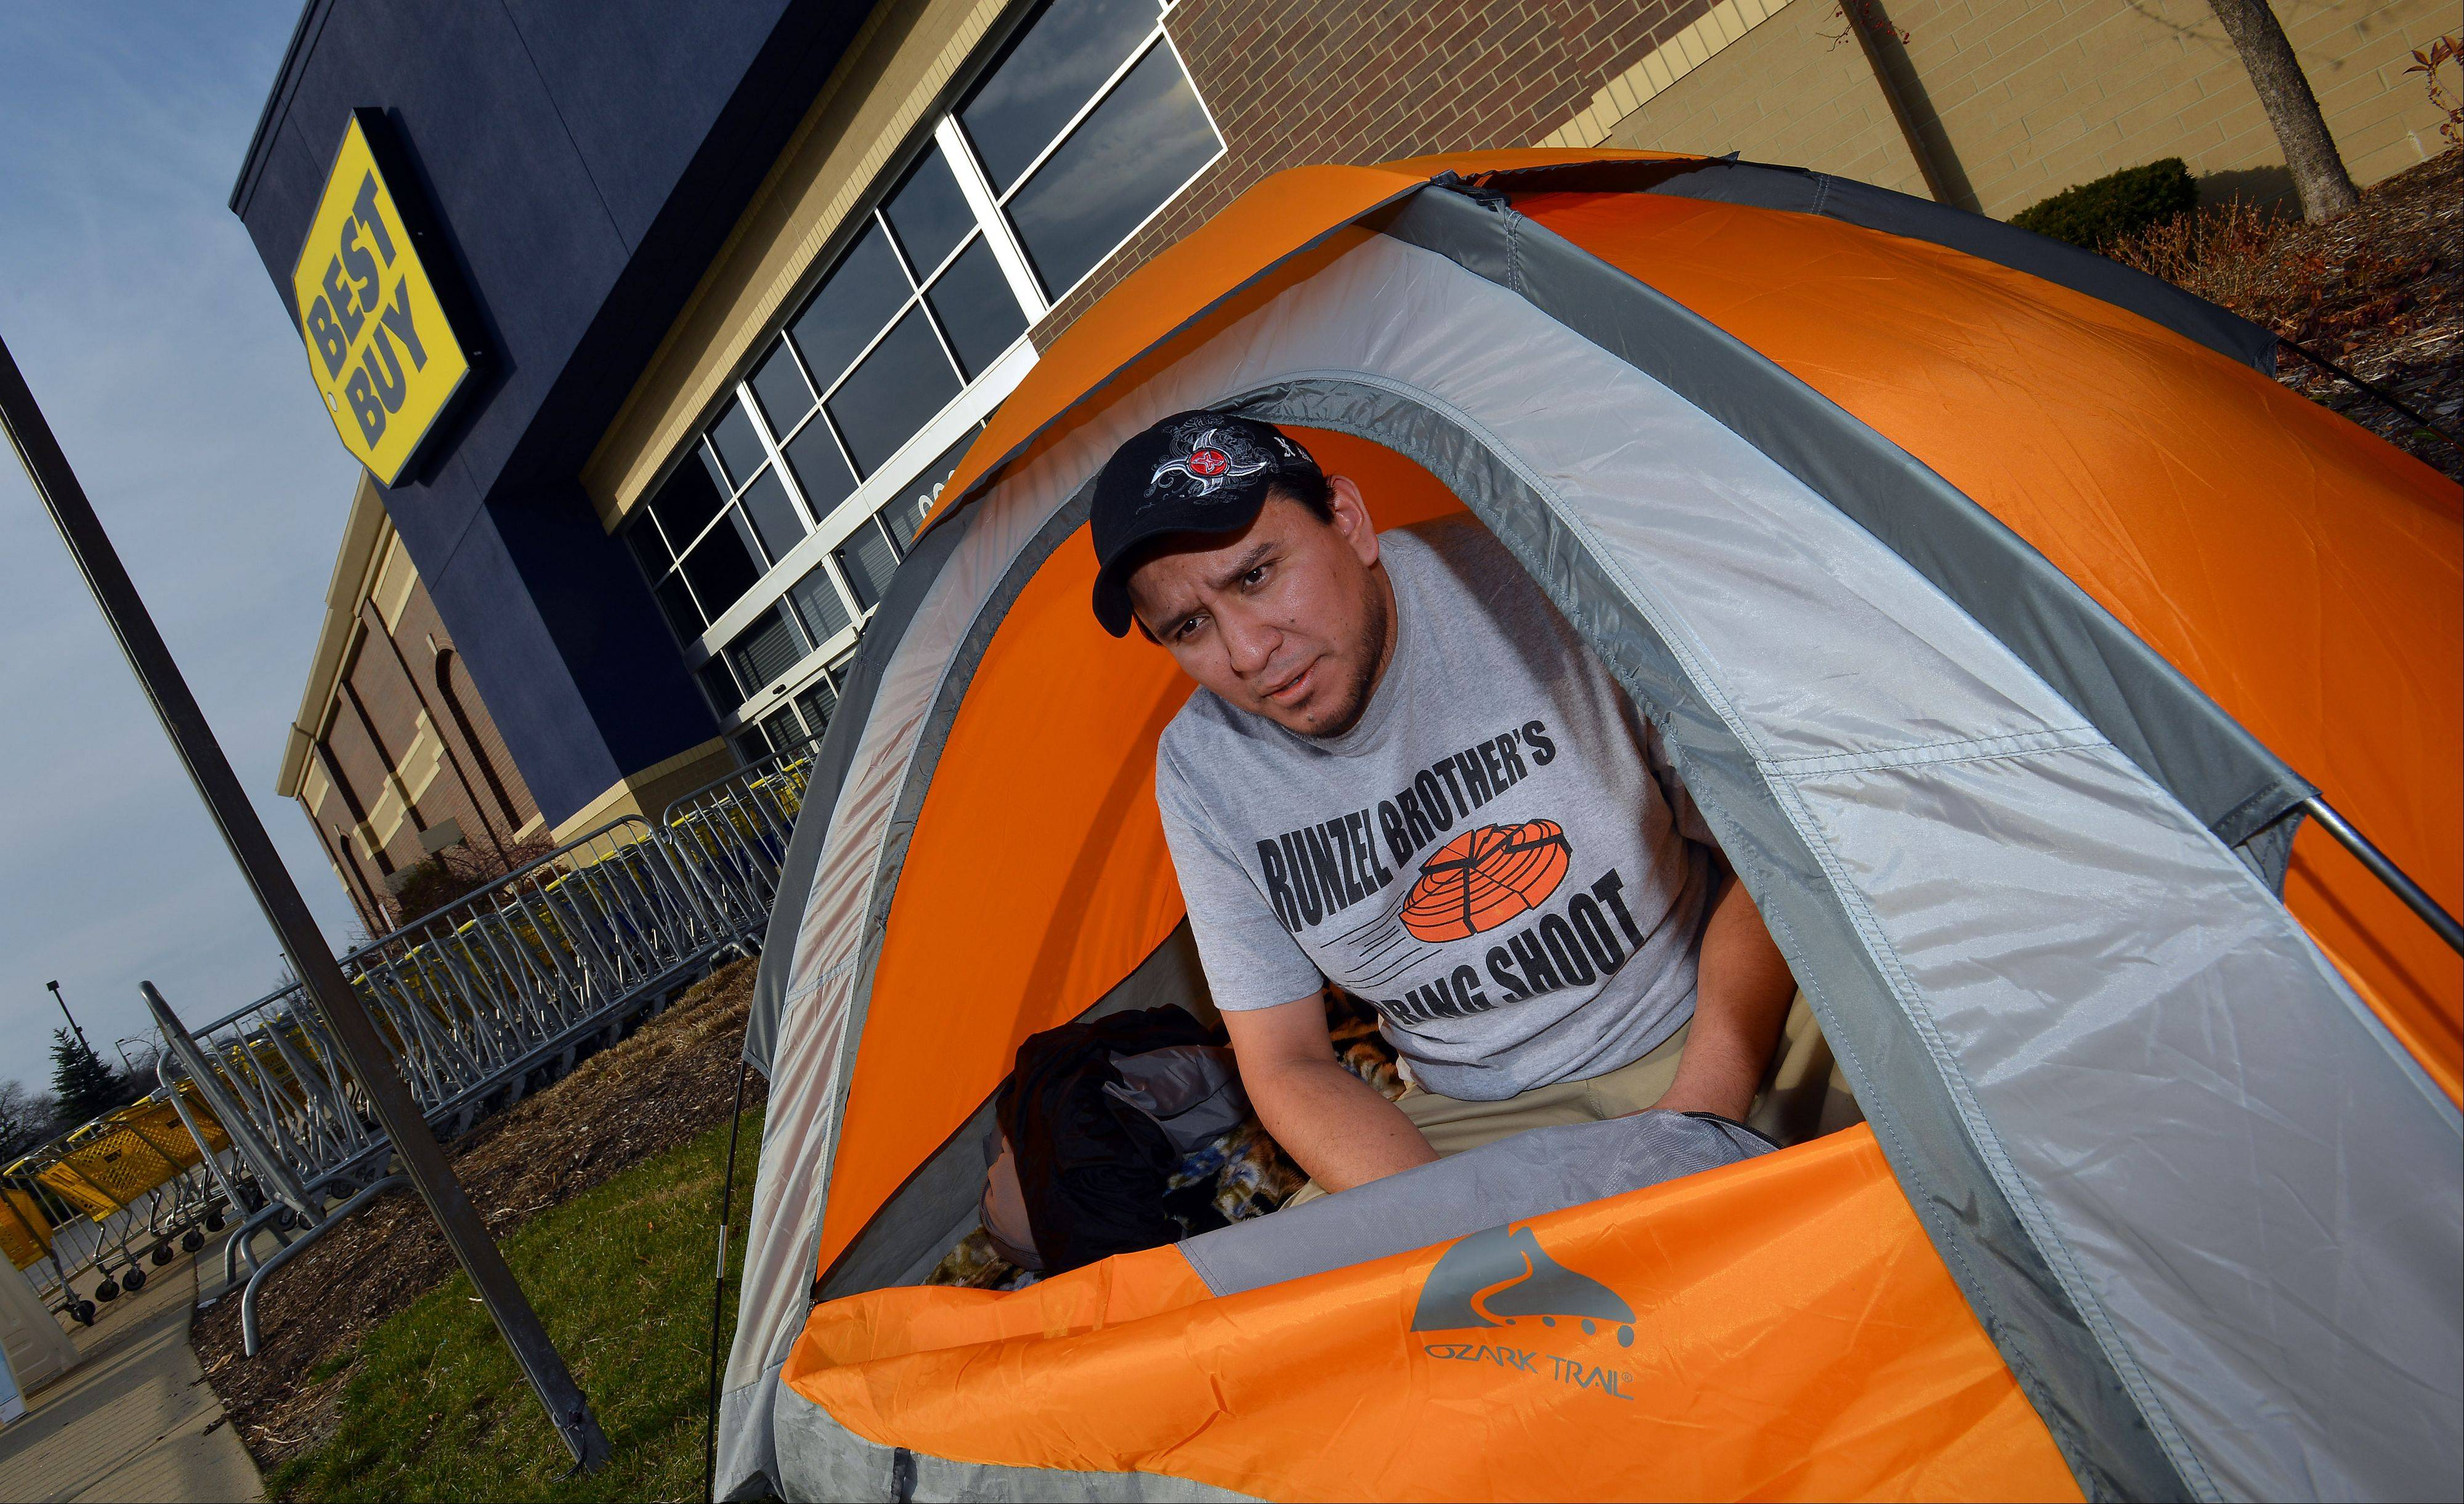 Tent city in front of the Best Buy in Schaumburg popped up at 12 a.m. on Tuesday with Felipe Acosta, 33, of Mt. Prospect driving the first tent stake looking for Black Friday deals skipping his Thanksgiving dinner.